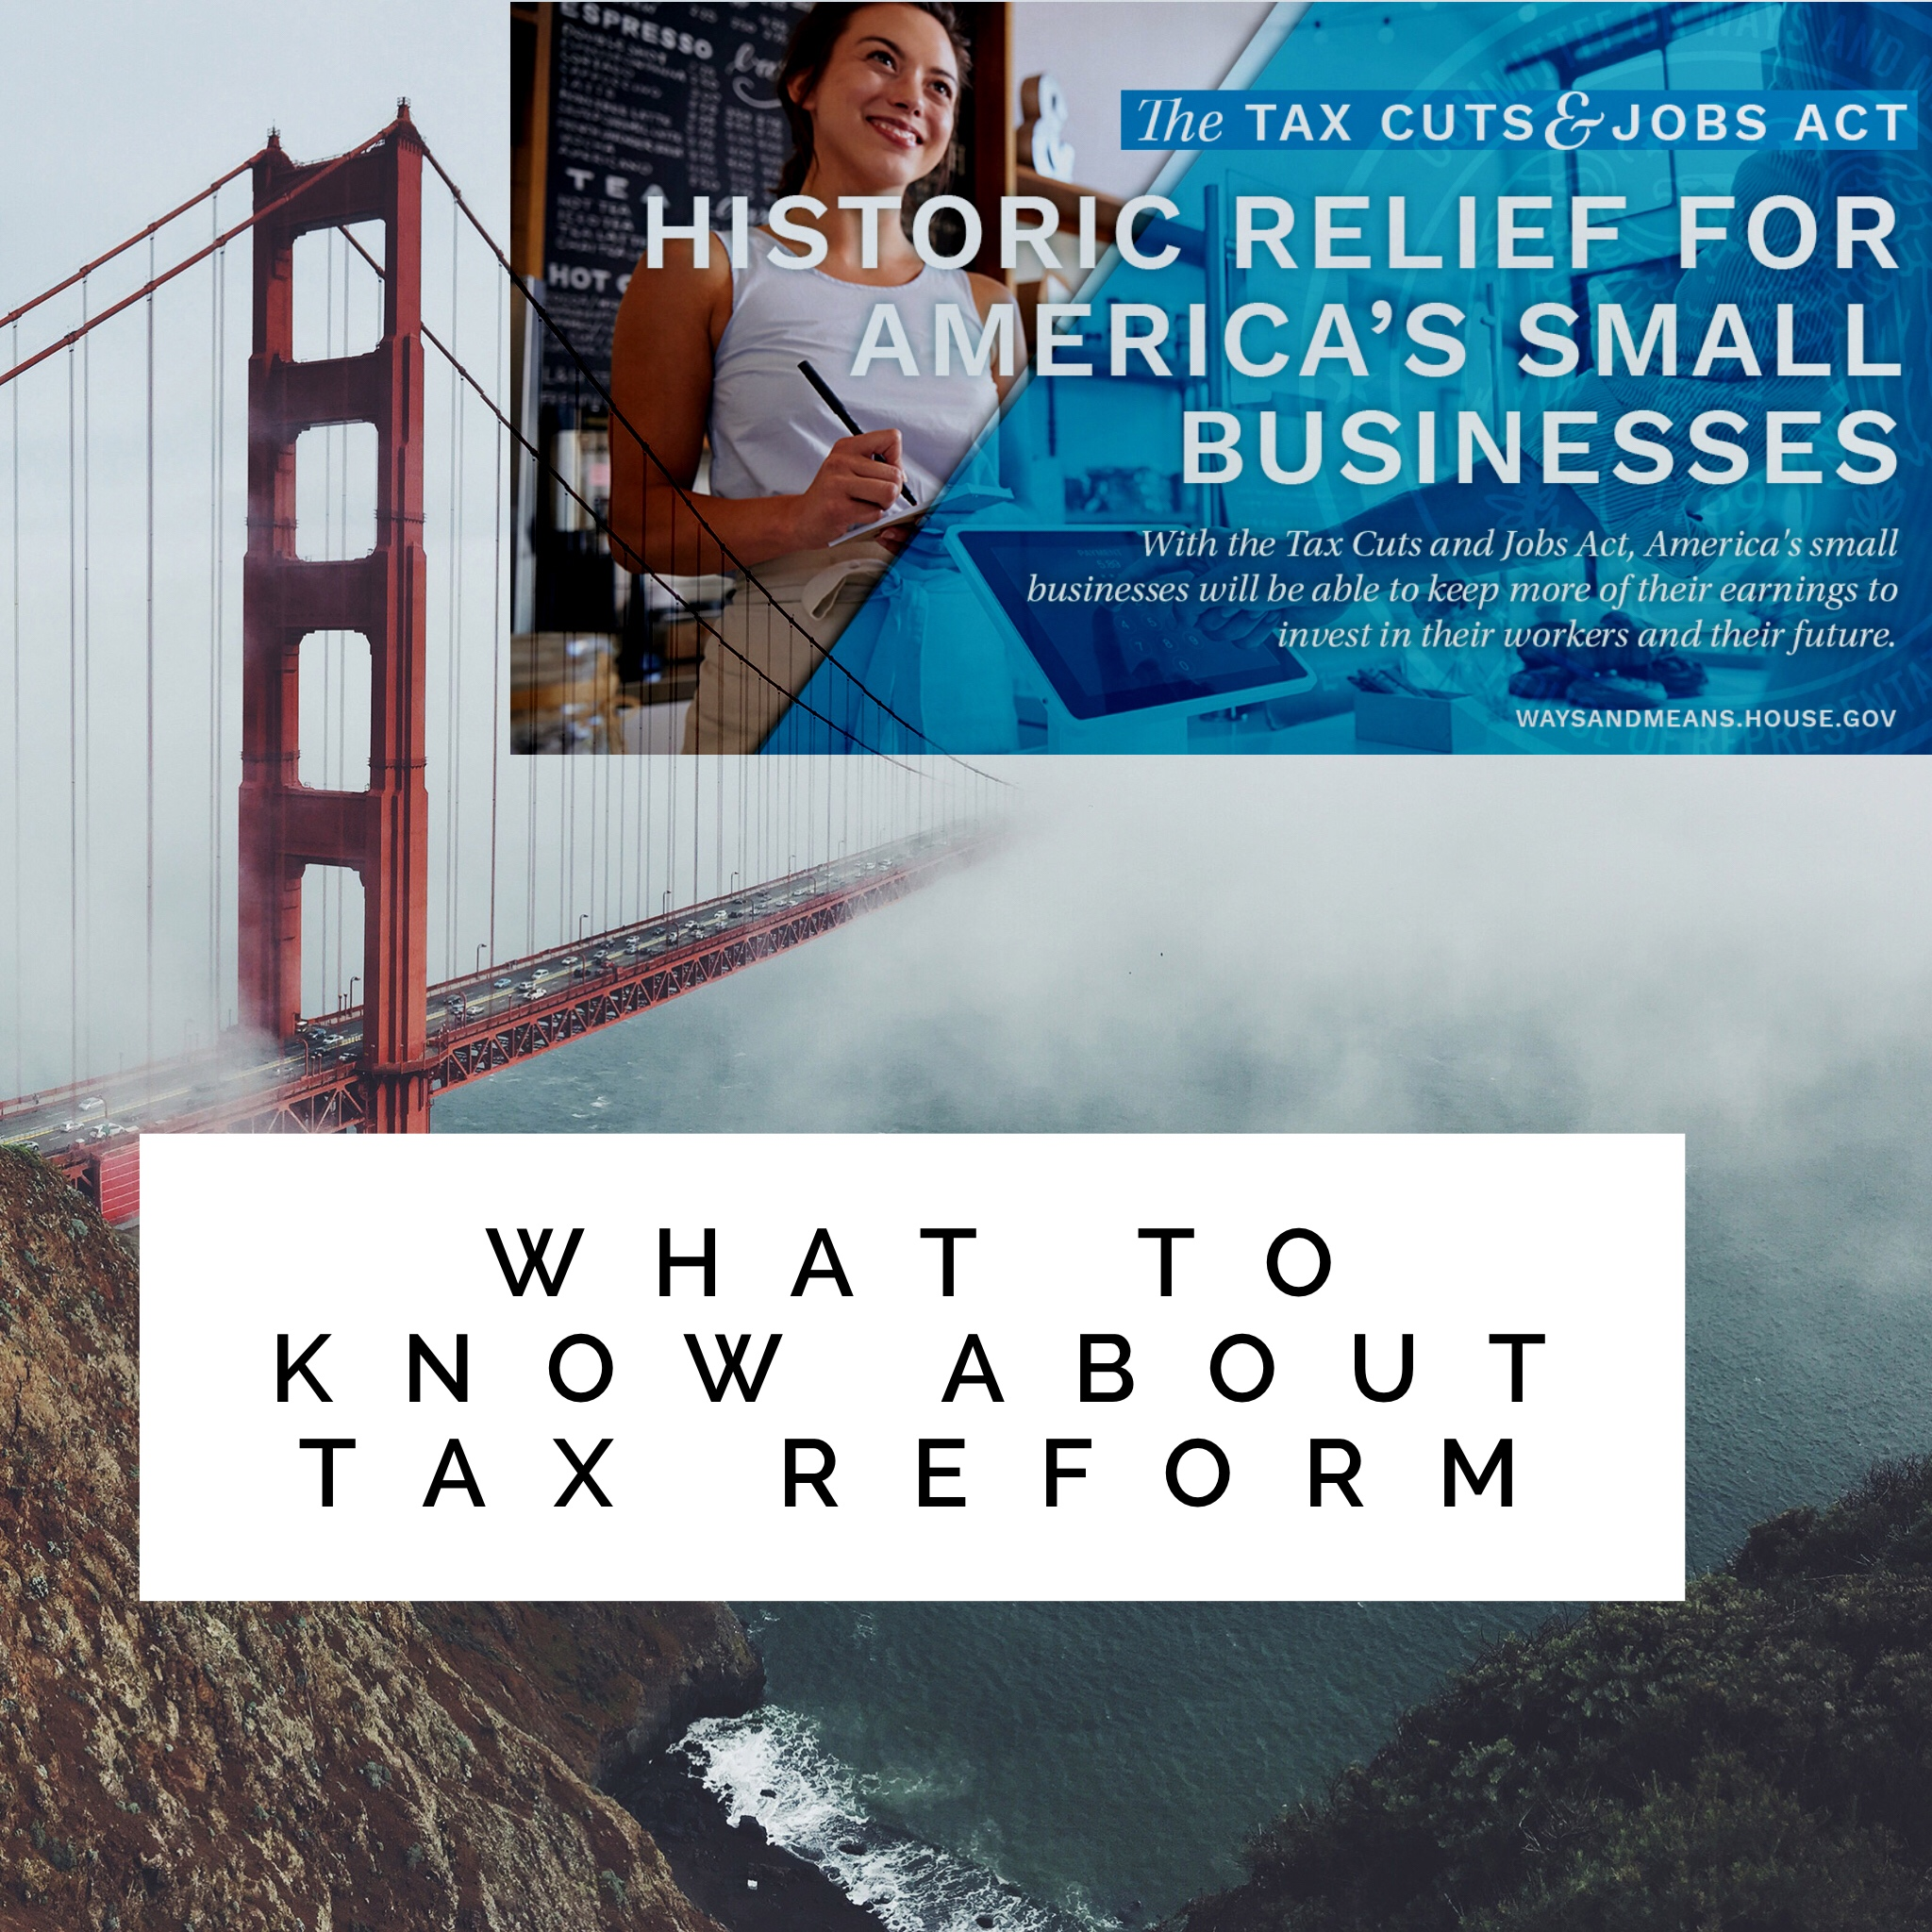 The Tax Reform & Tax Rate Changes You Should Know